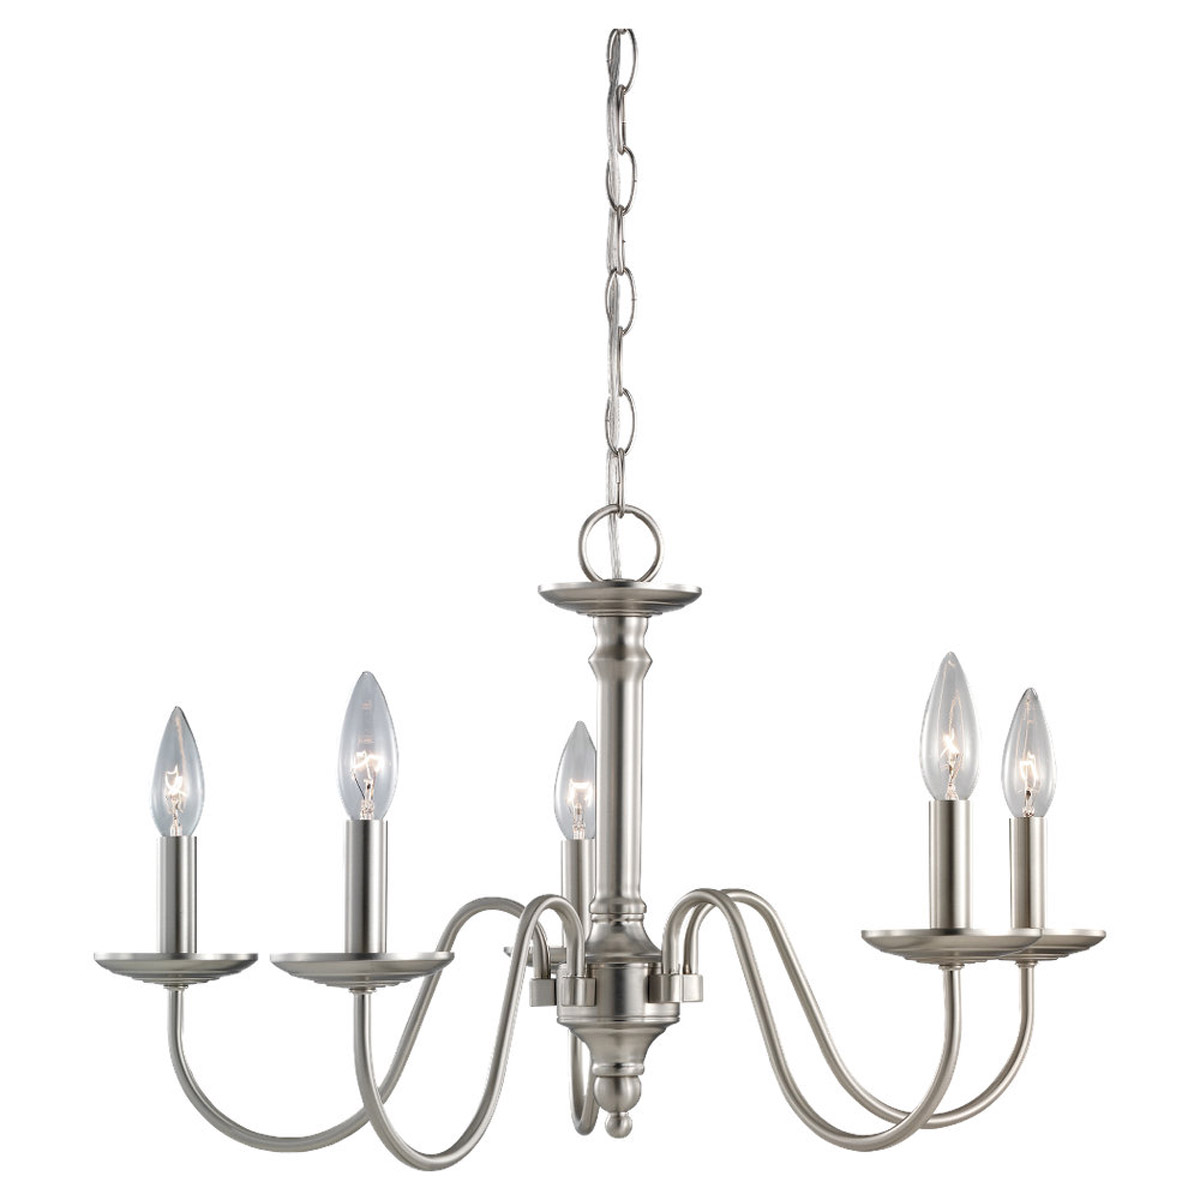 Sea Gull Lighting Wellington 5 Light Chandelier in Brushed Nickel 31656-962 photo